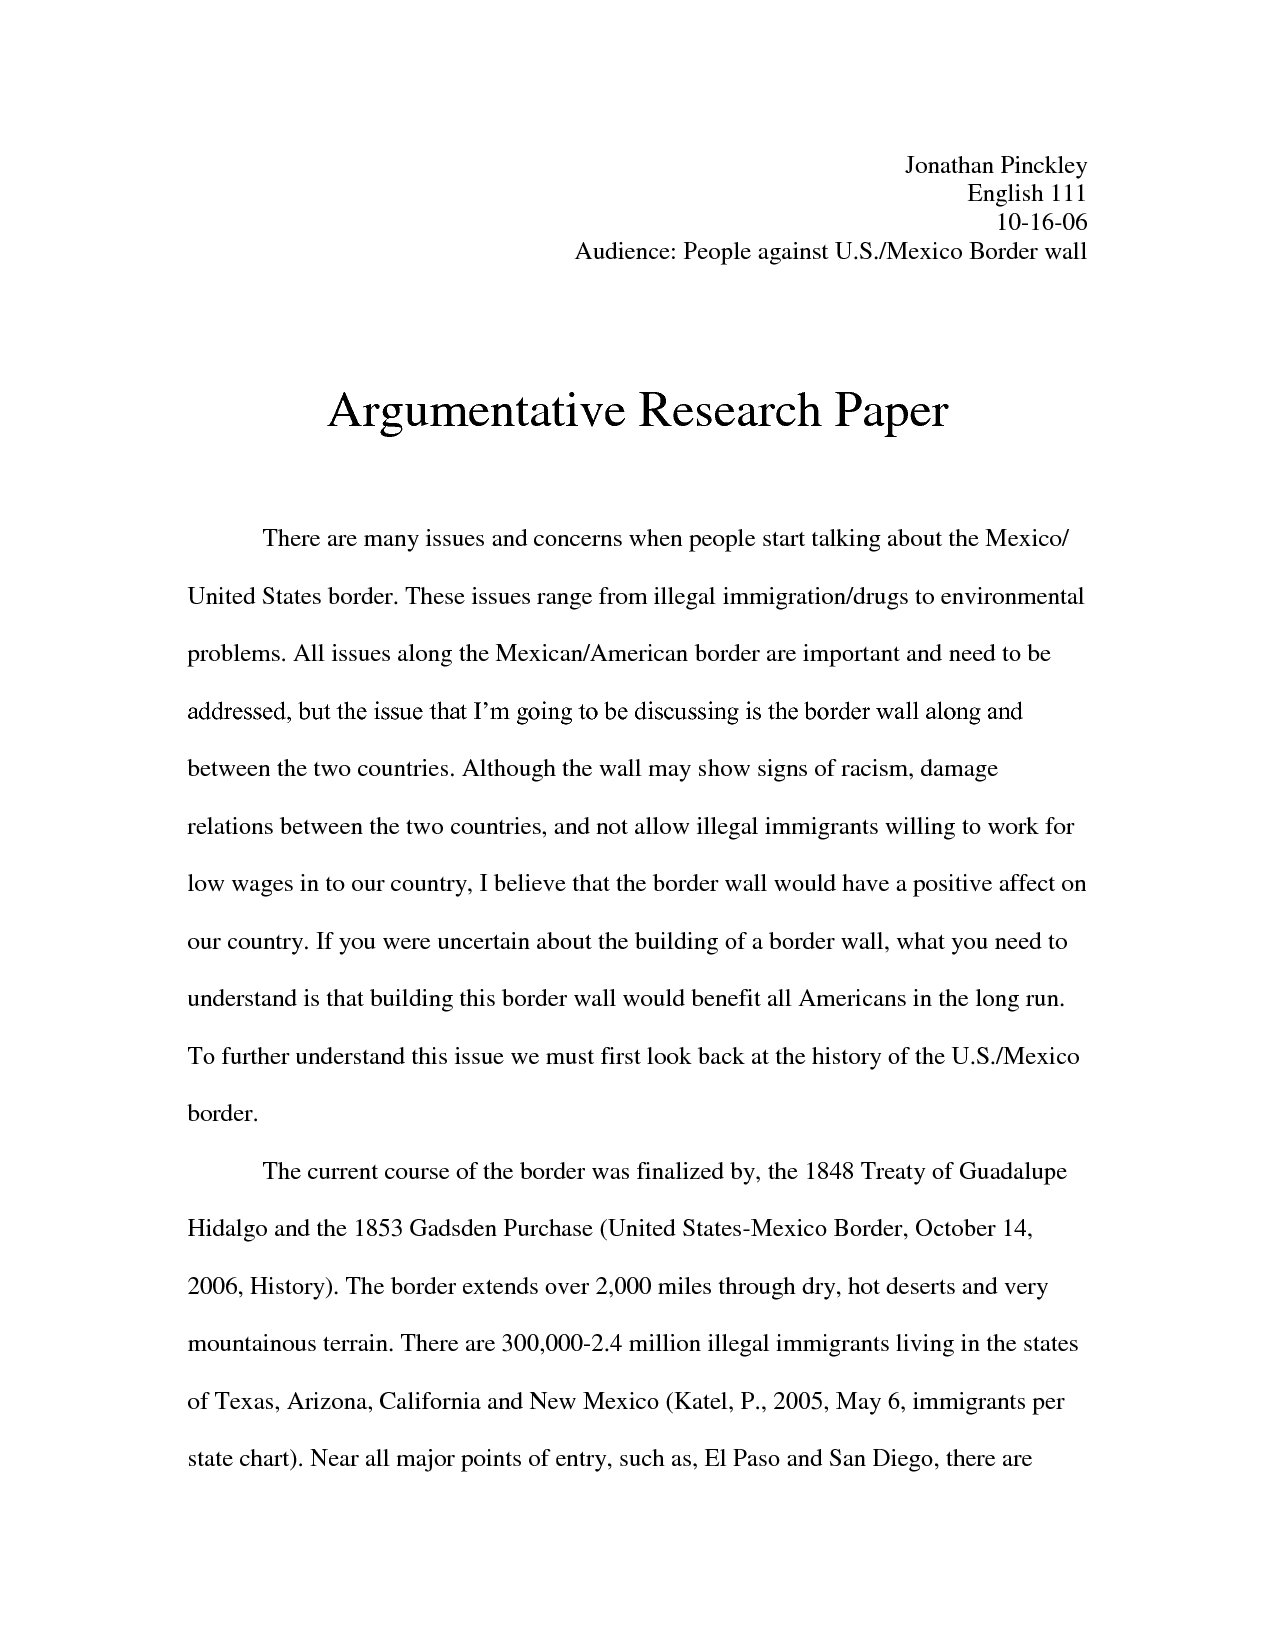 10 Awesome Argumentative Research Paper Topic Ideas a argumentative essay how to write essay proposal high school